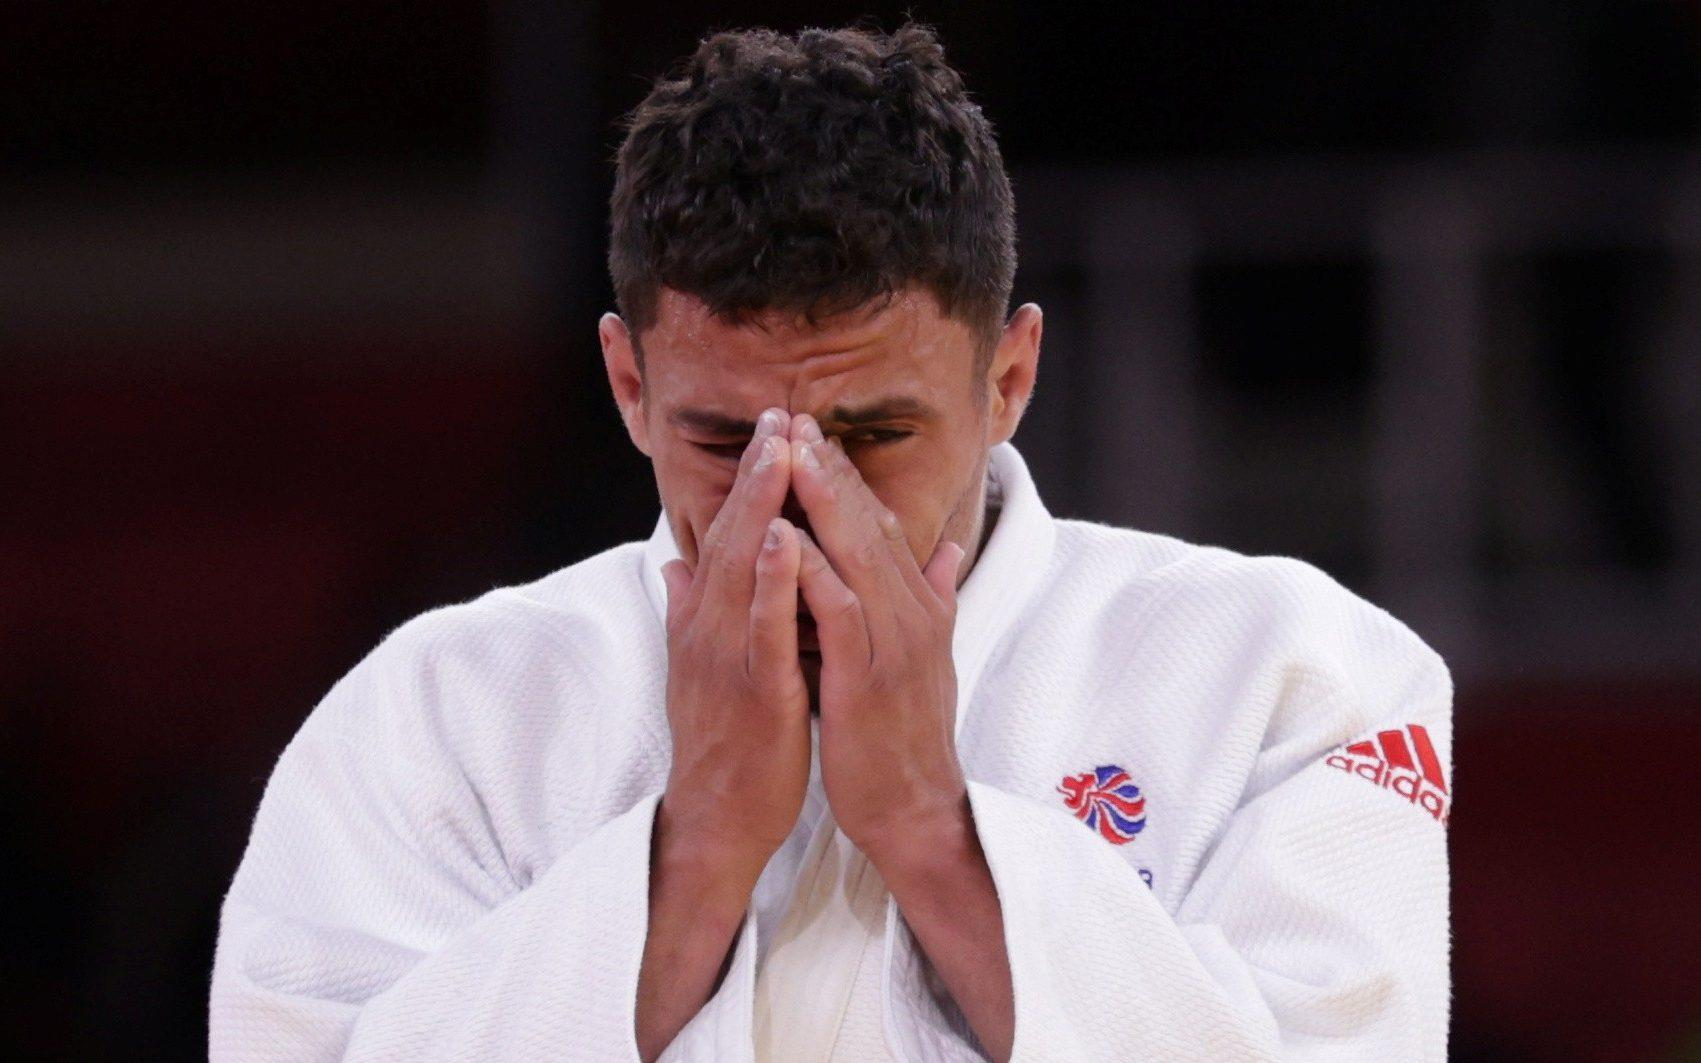 'I just want to go home': Britain's judo bad boy and reality TV star cries as Olympics lasts four minutes